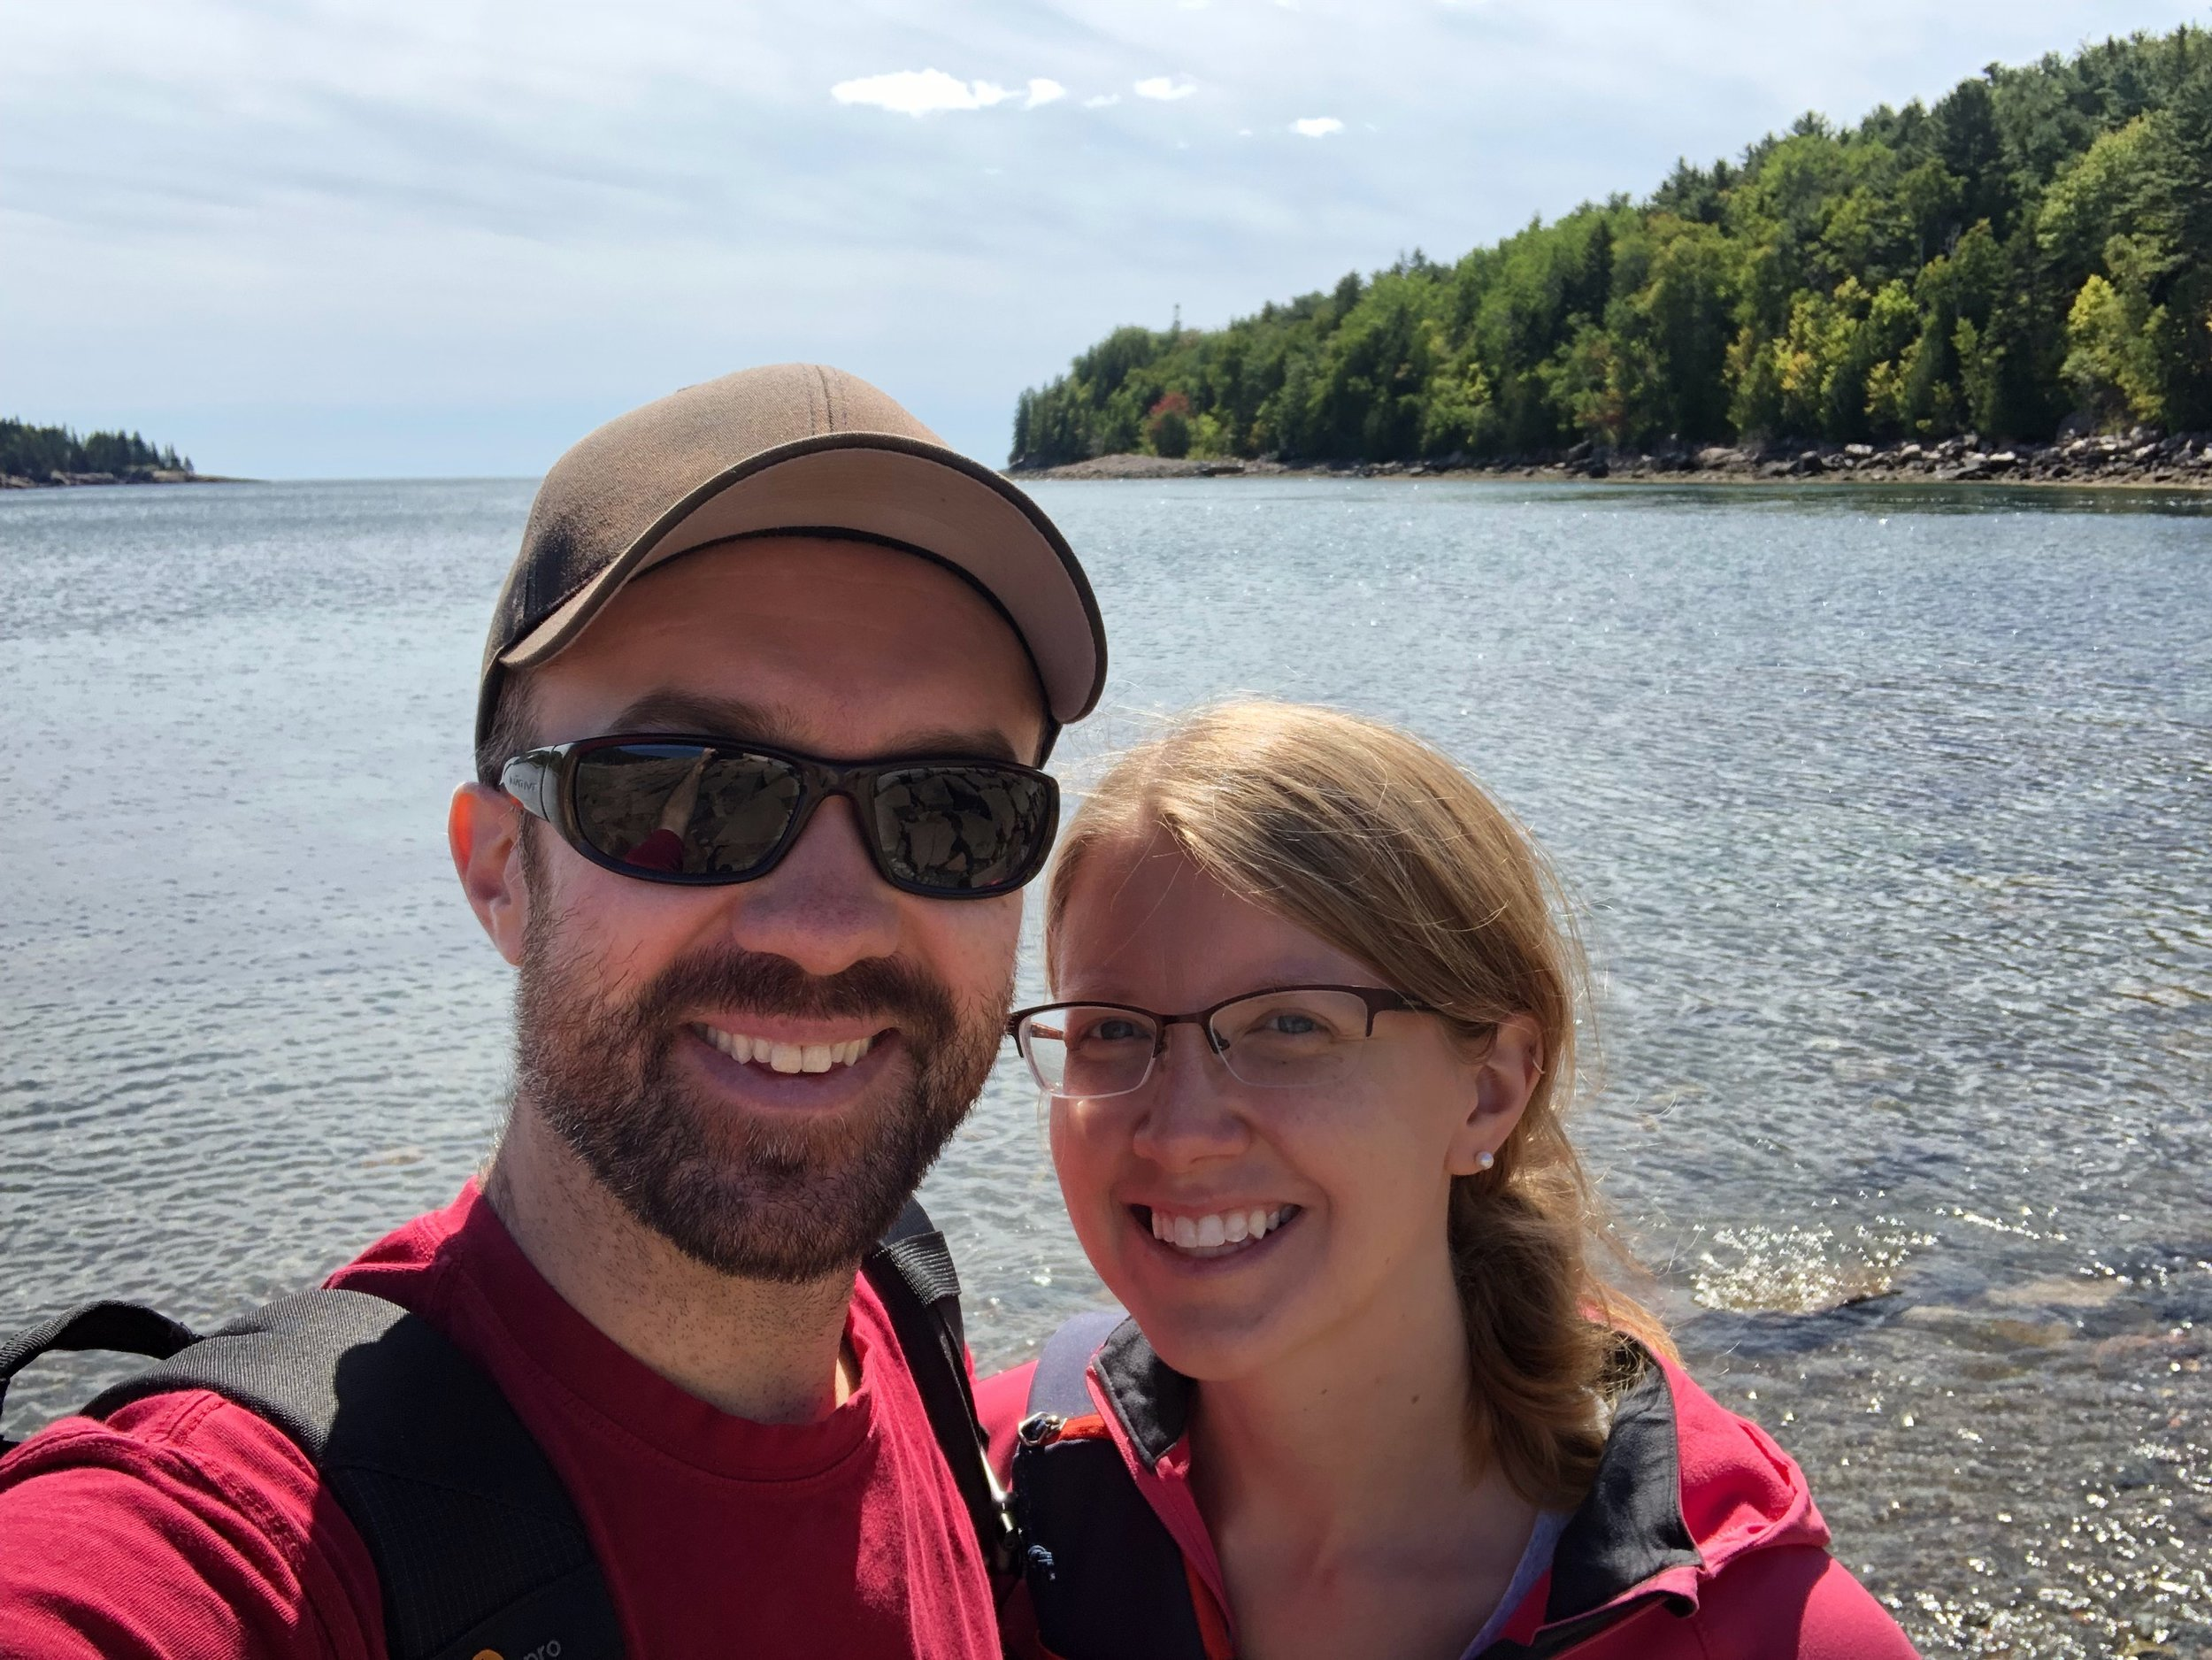 Happy Anniversary!  At Otter Cove, Acadia National Park